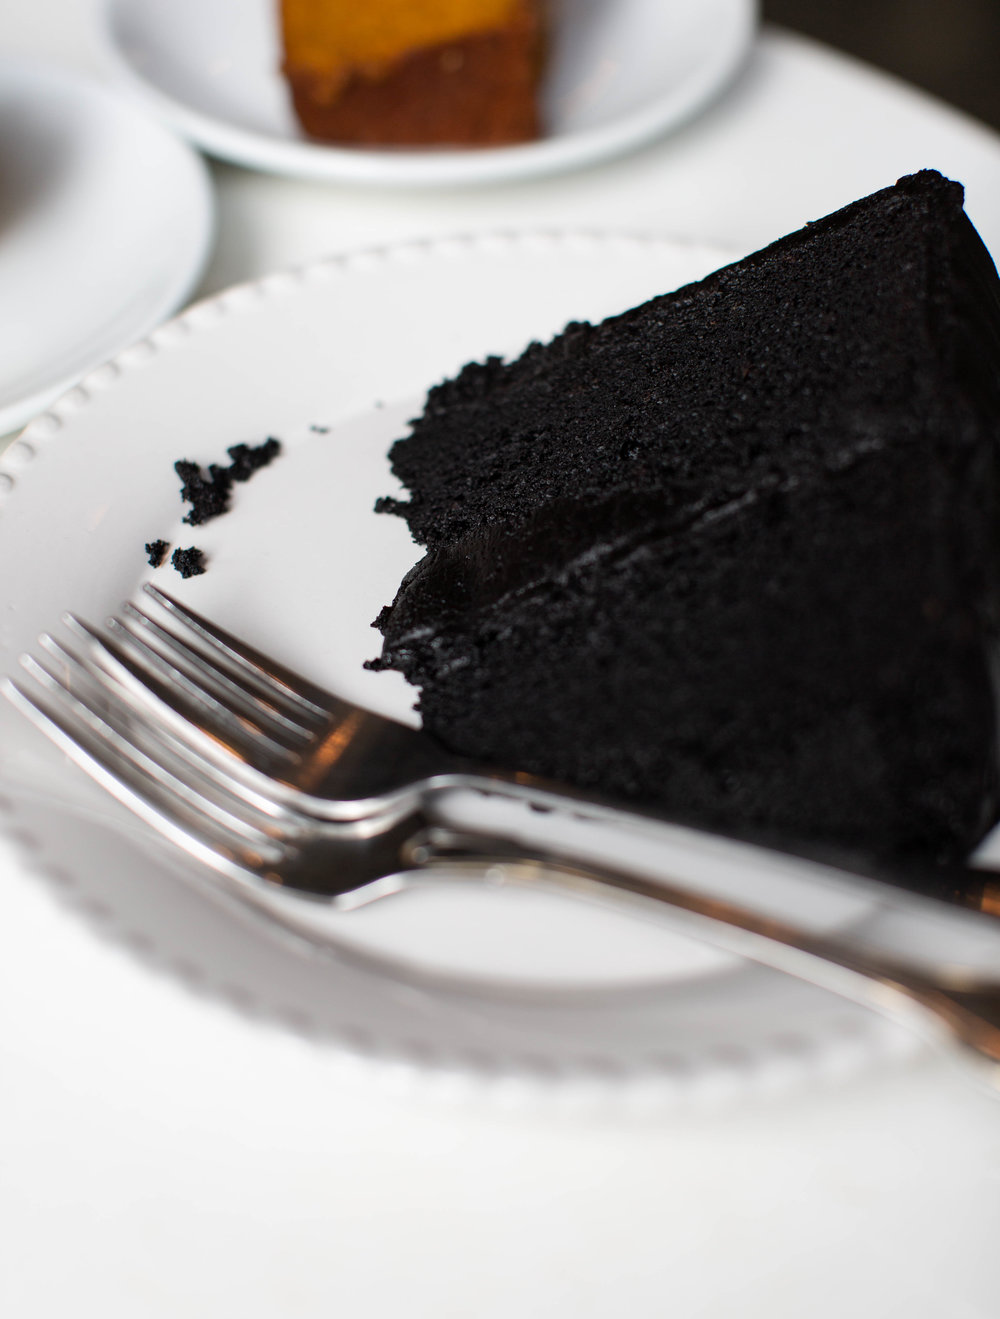 Ovenly's Brooklyn Blackout Cake - isn't it a thing of beauty?